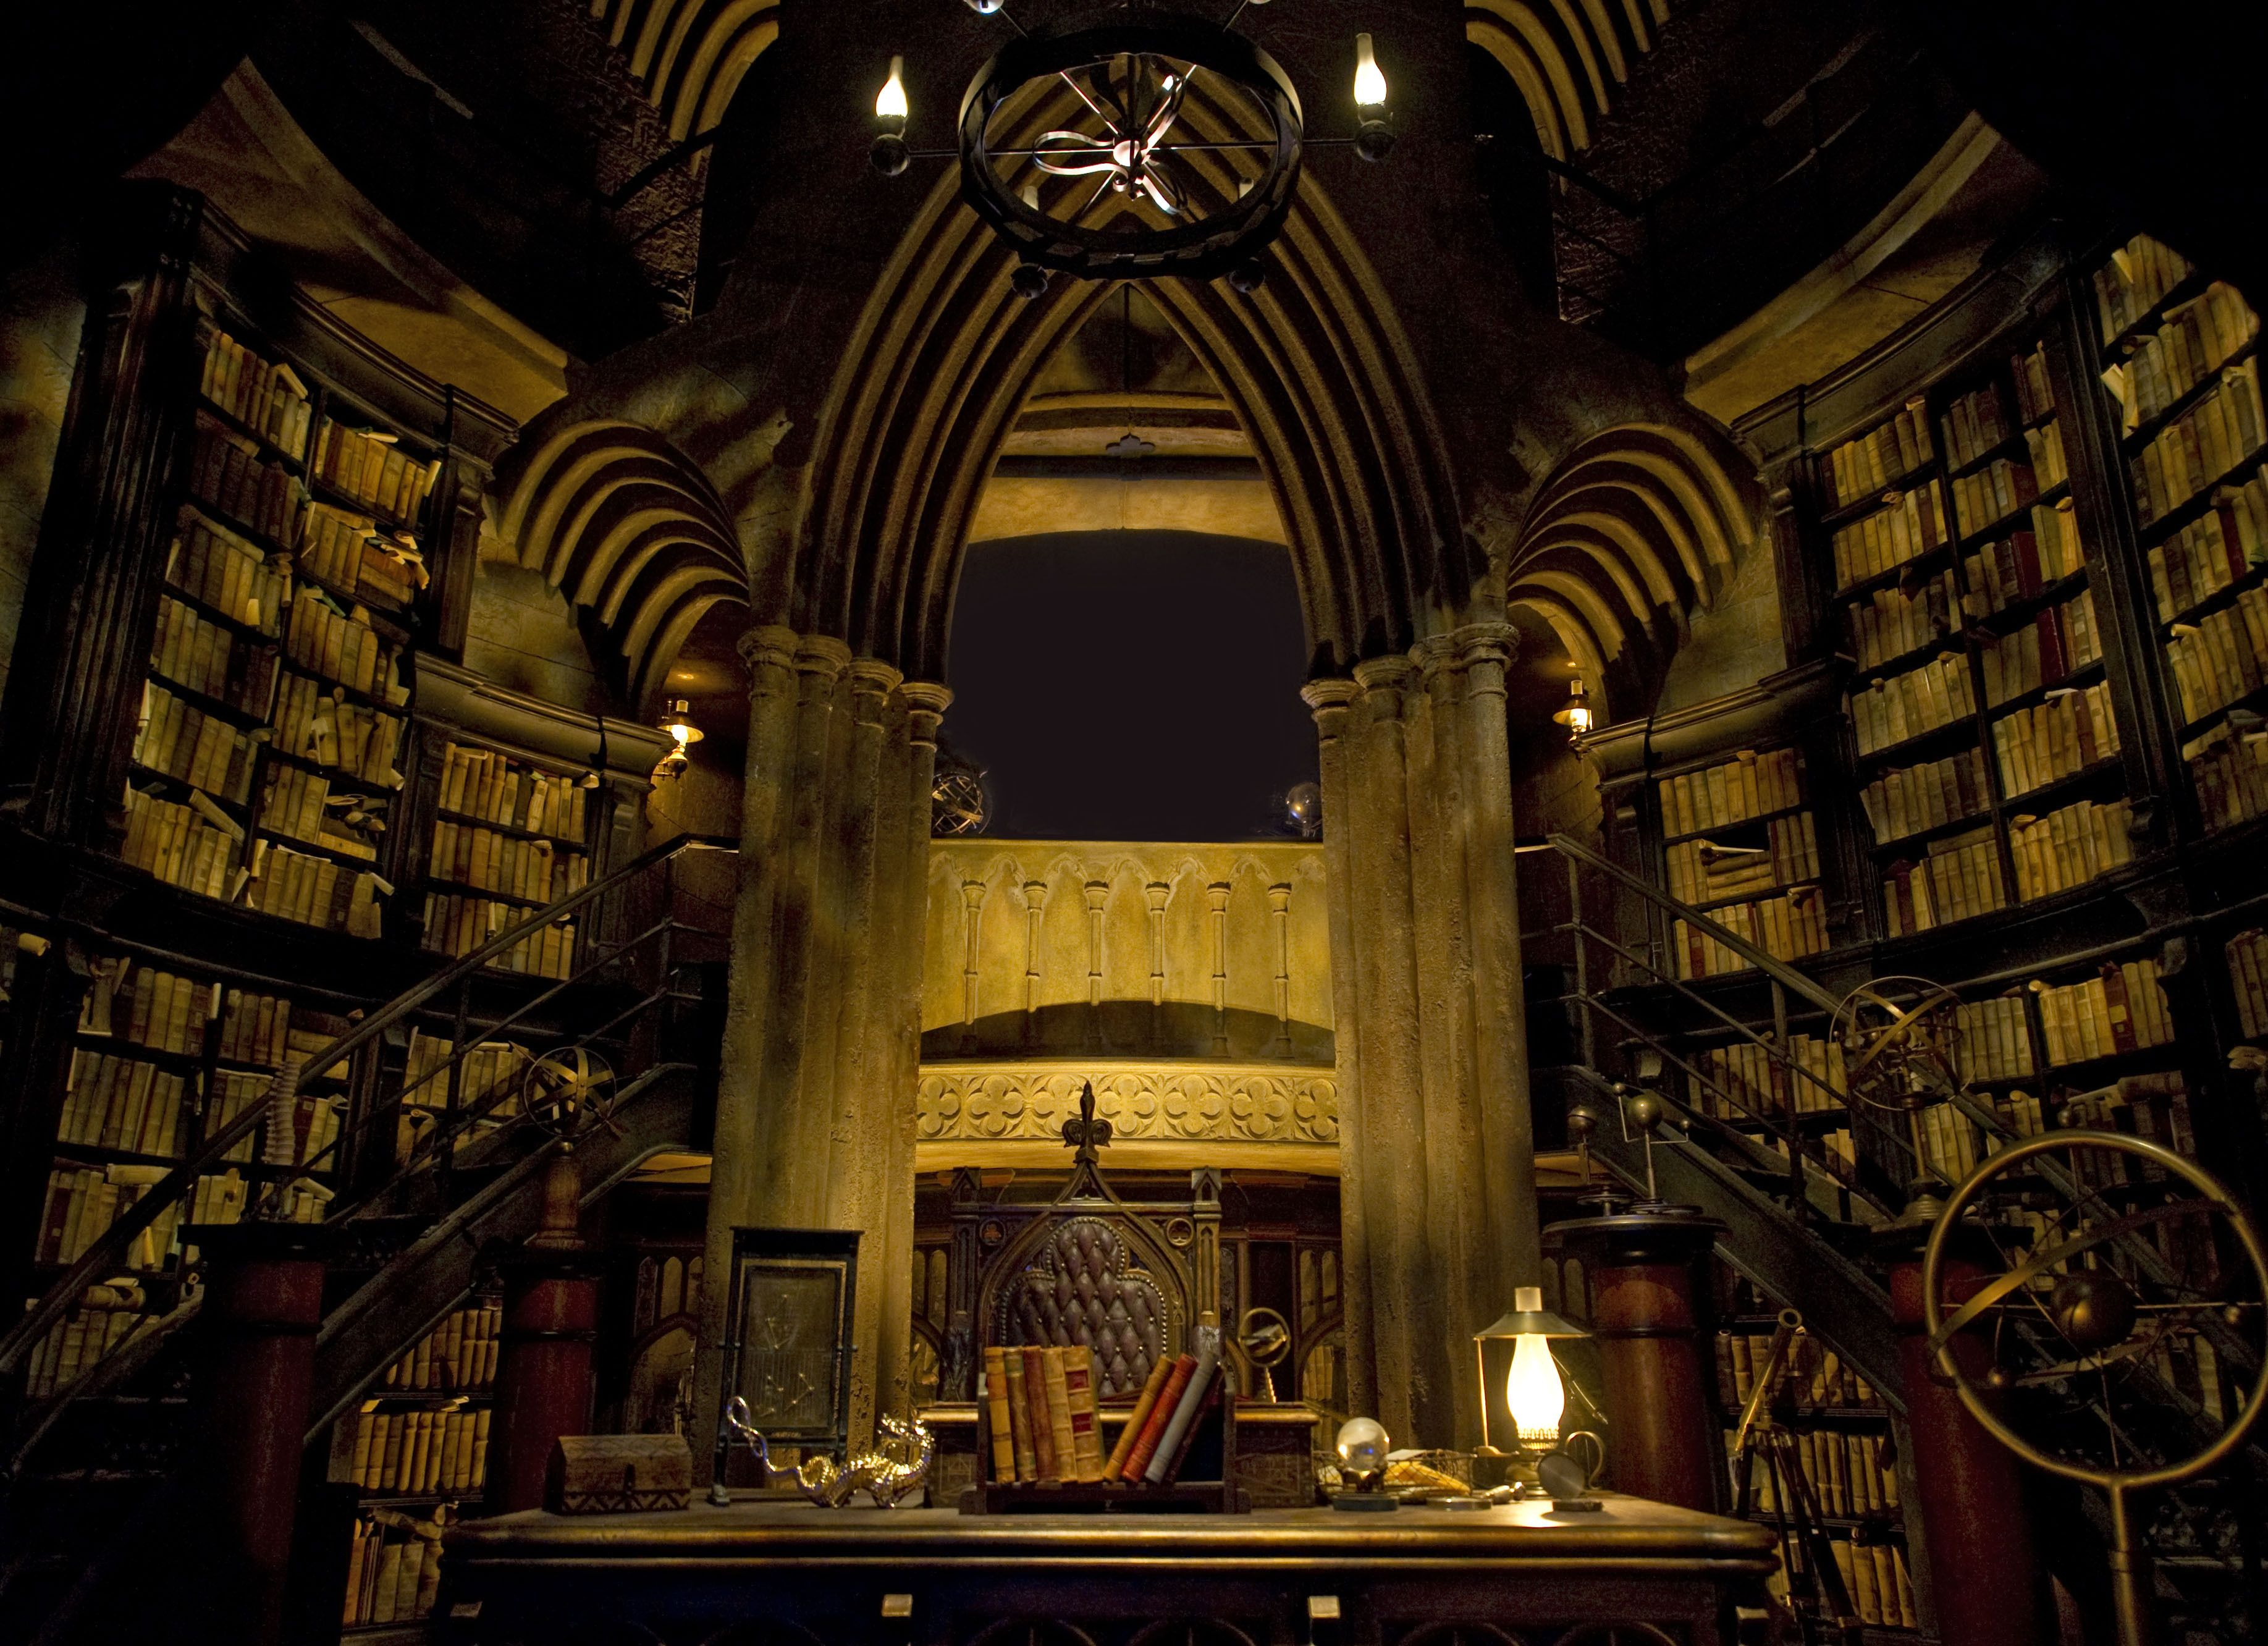 Dumbledores Office My Office at the University Harry potter 3671x2664